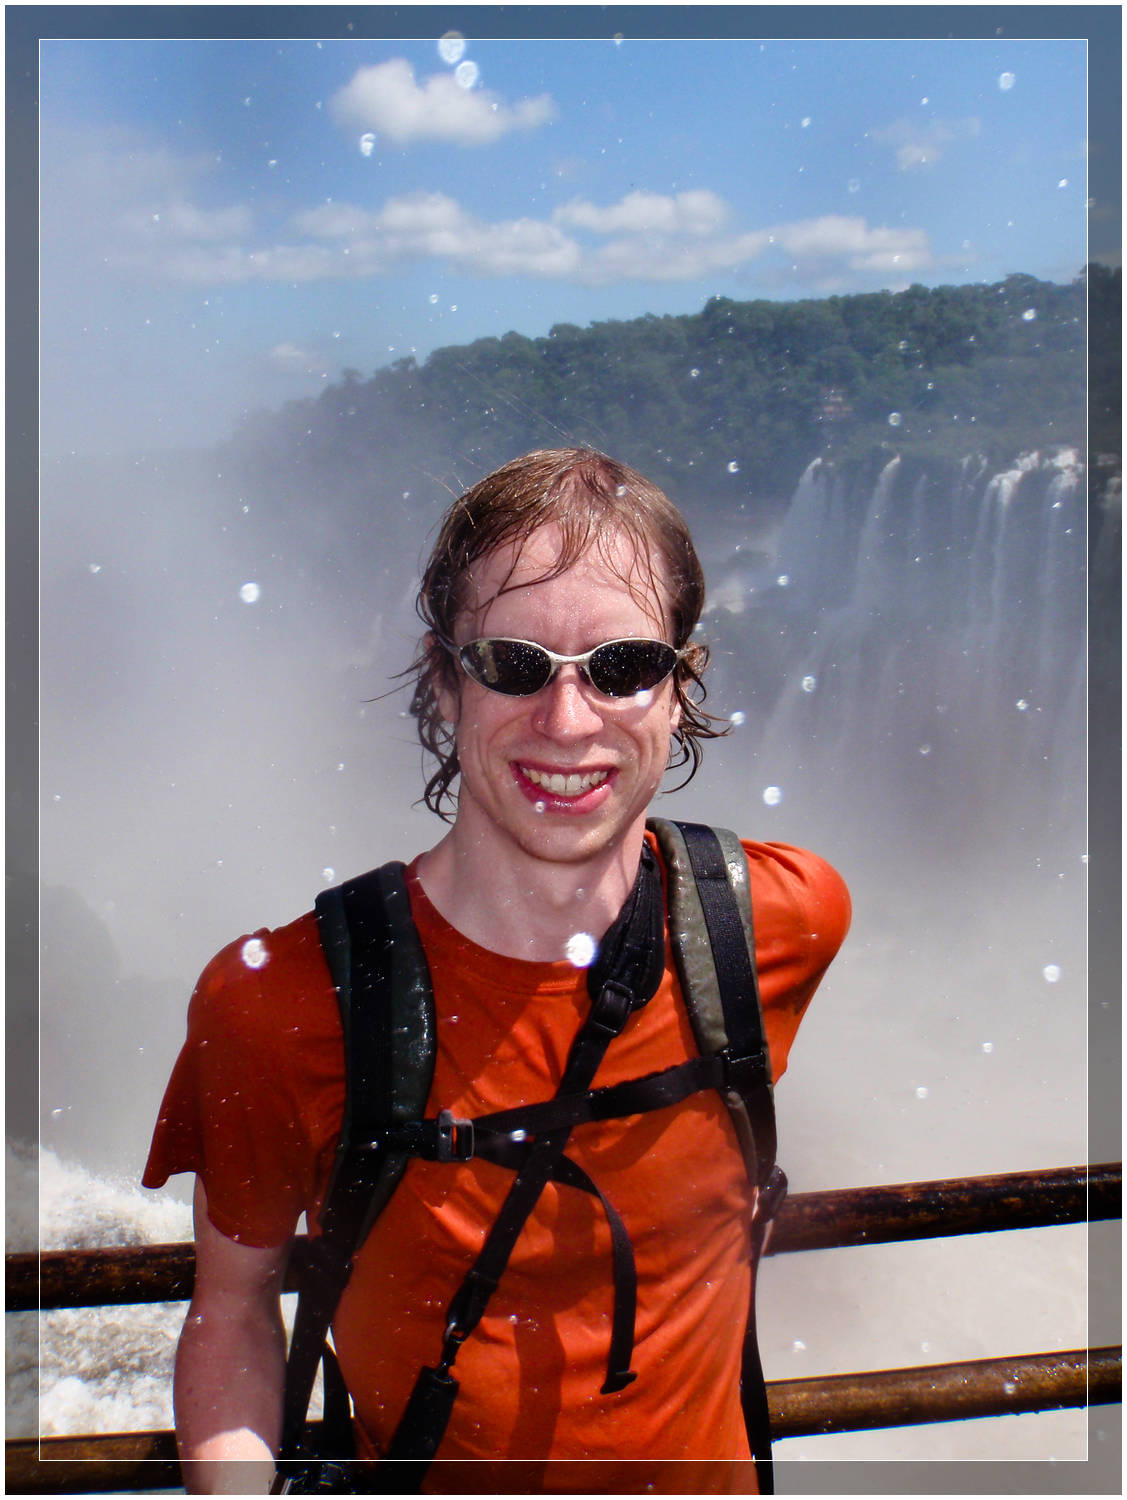 Soaked in Iguazu - Argentina (c) Dustin Main 2010